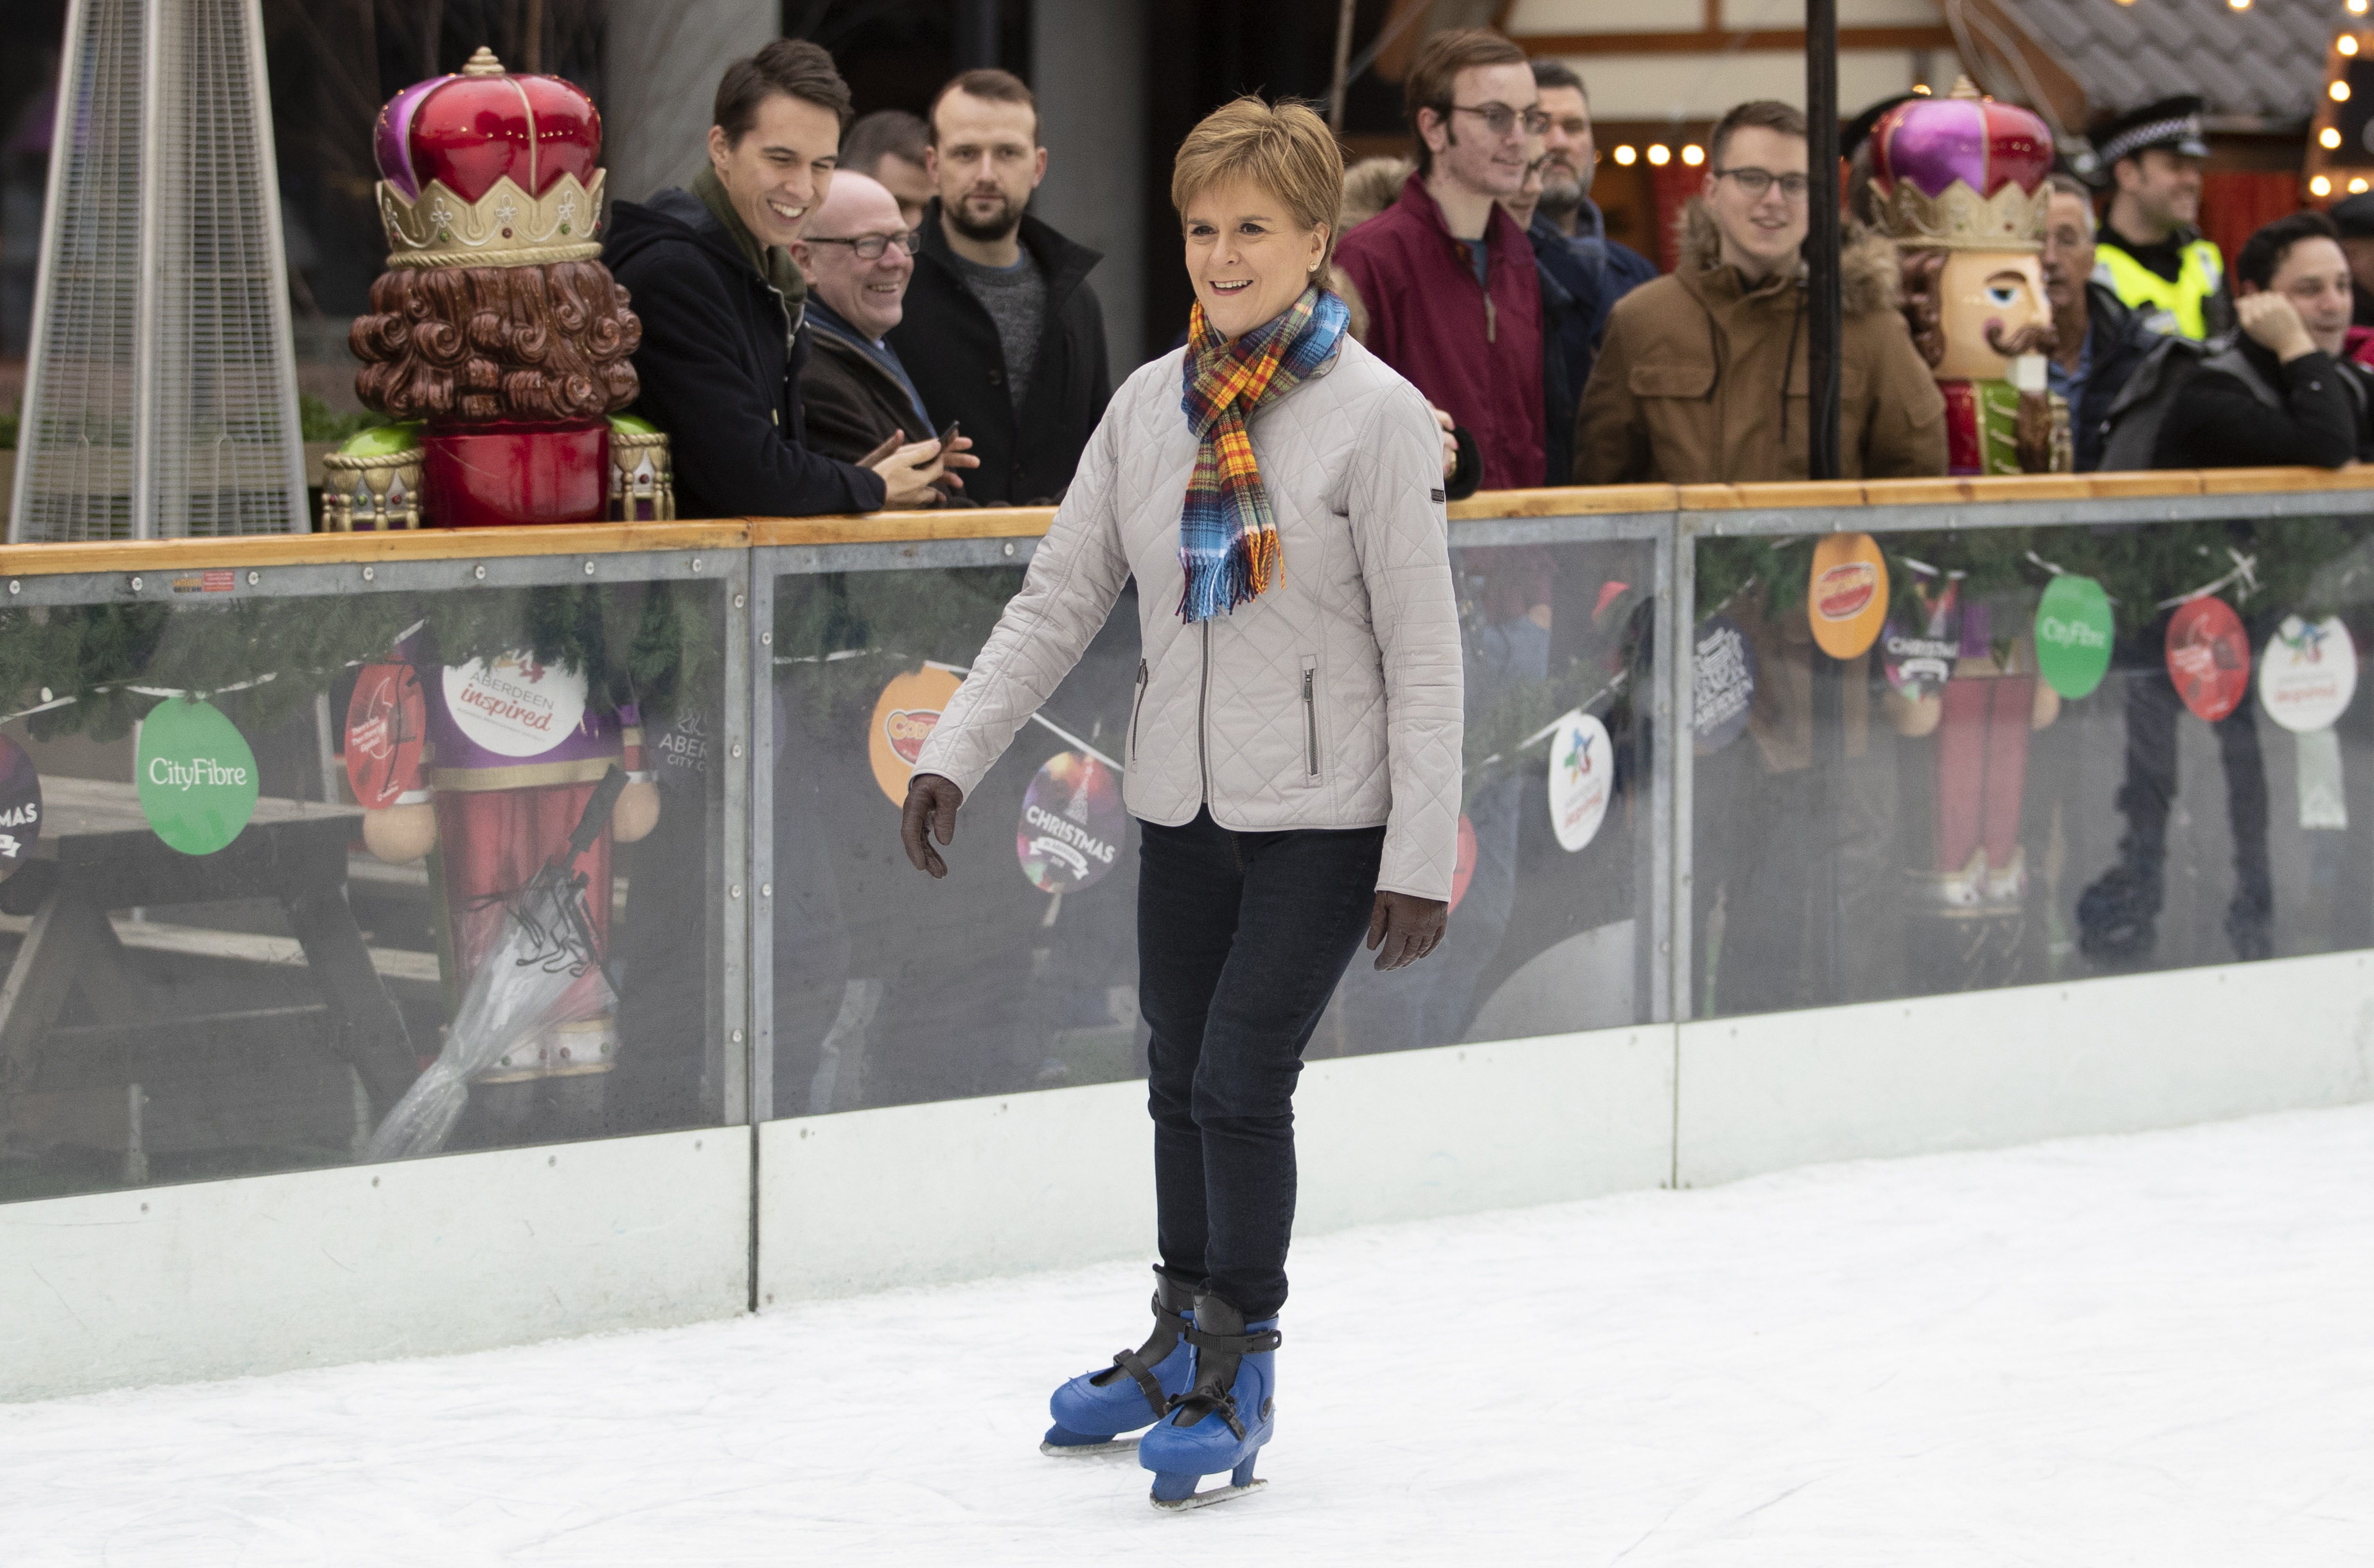 SNP leader Nicola Sturgeon ice skates during a visit to the Aberdeen Christmas Market in The Quad, Marischal College, on the General Election campaign trail. PA Photo. Picture date: Saturday December 7, 2019. See PA story POLITICS Election Sturgeon. Photo credit should read: Jane Barlow/PA Wire